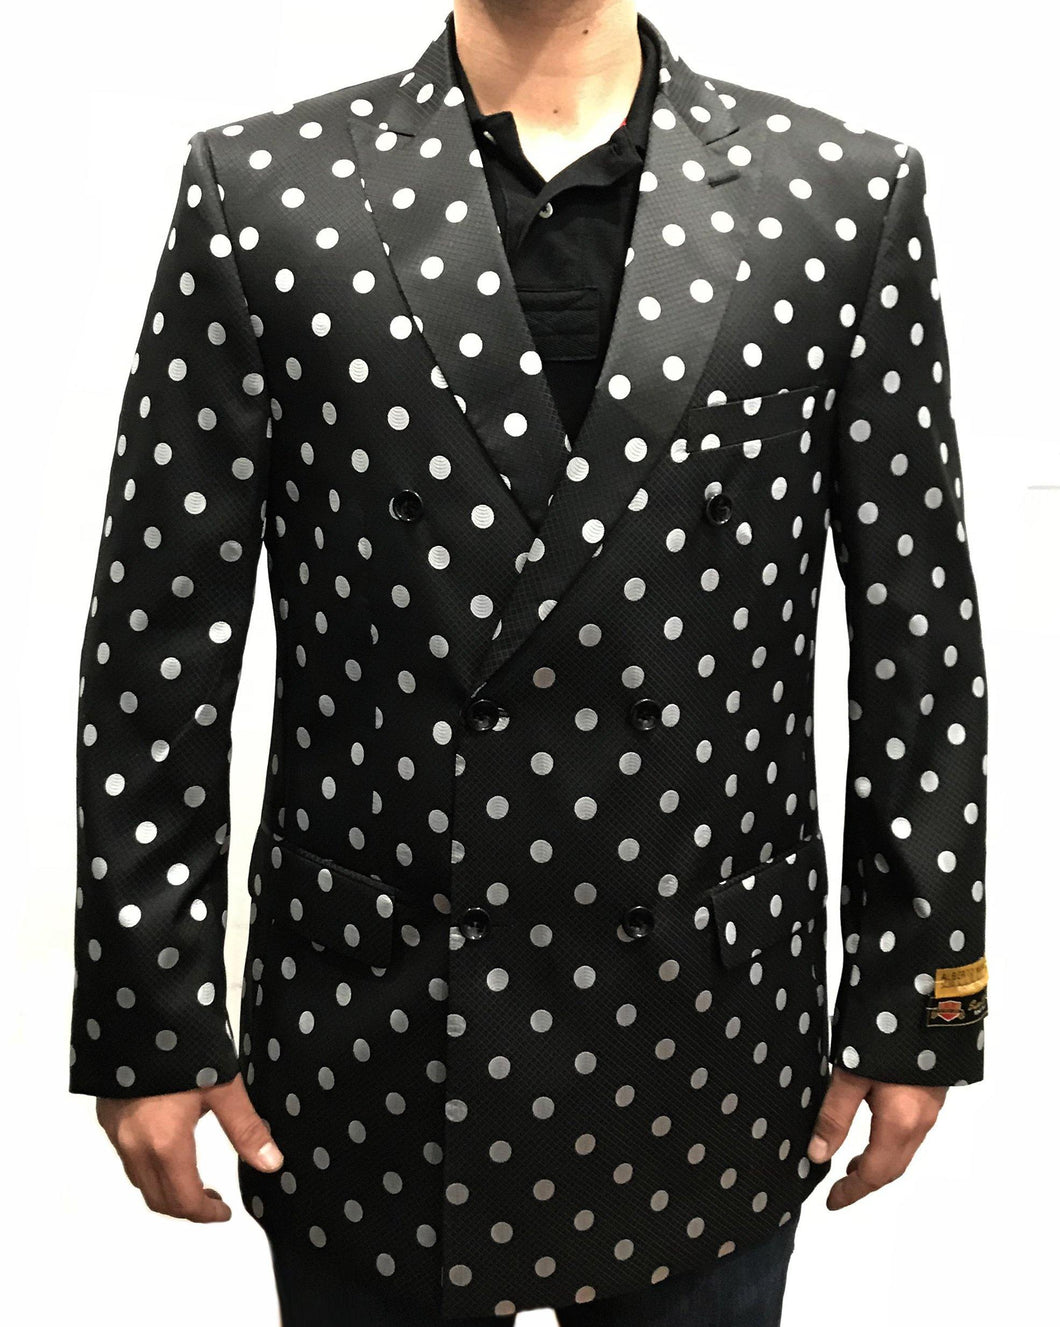 DB-Blazer Black/White Dots